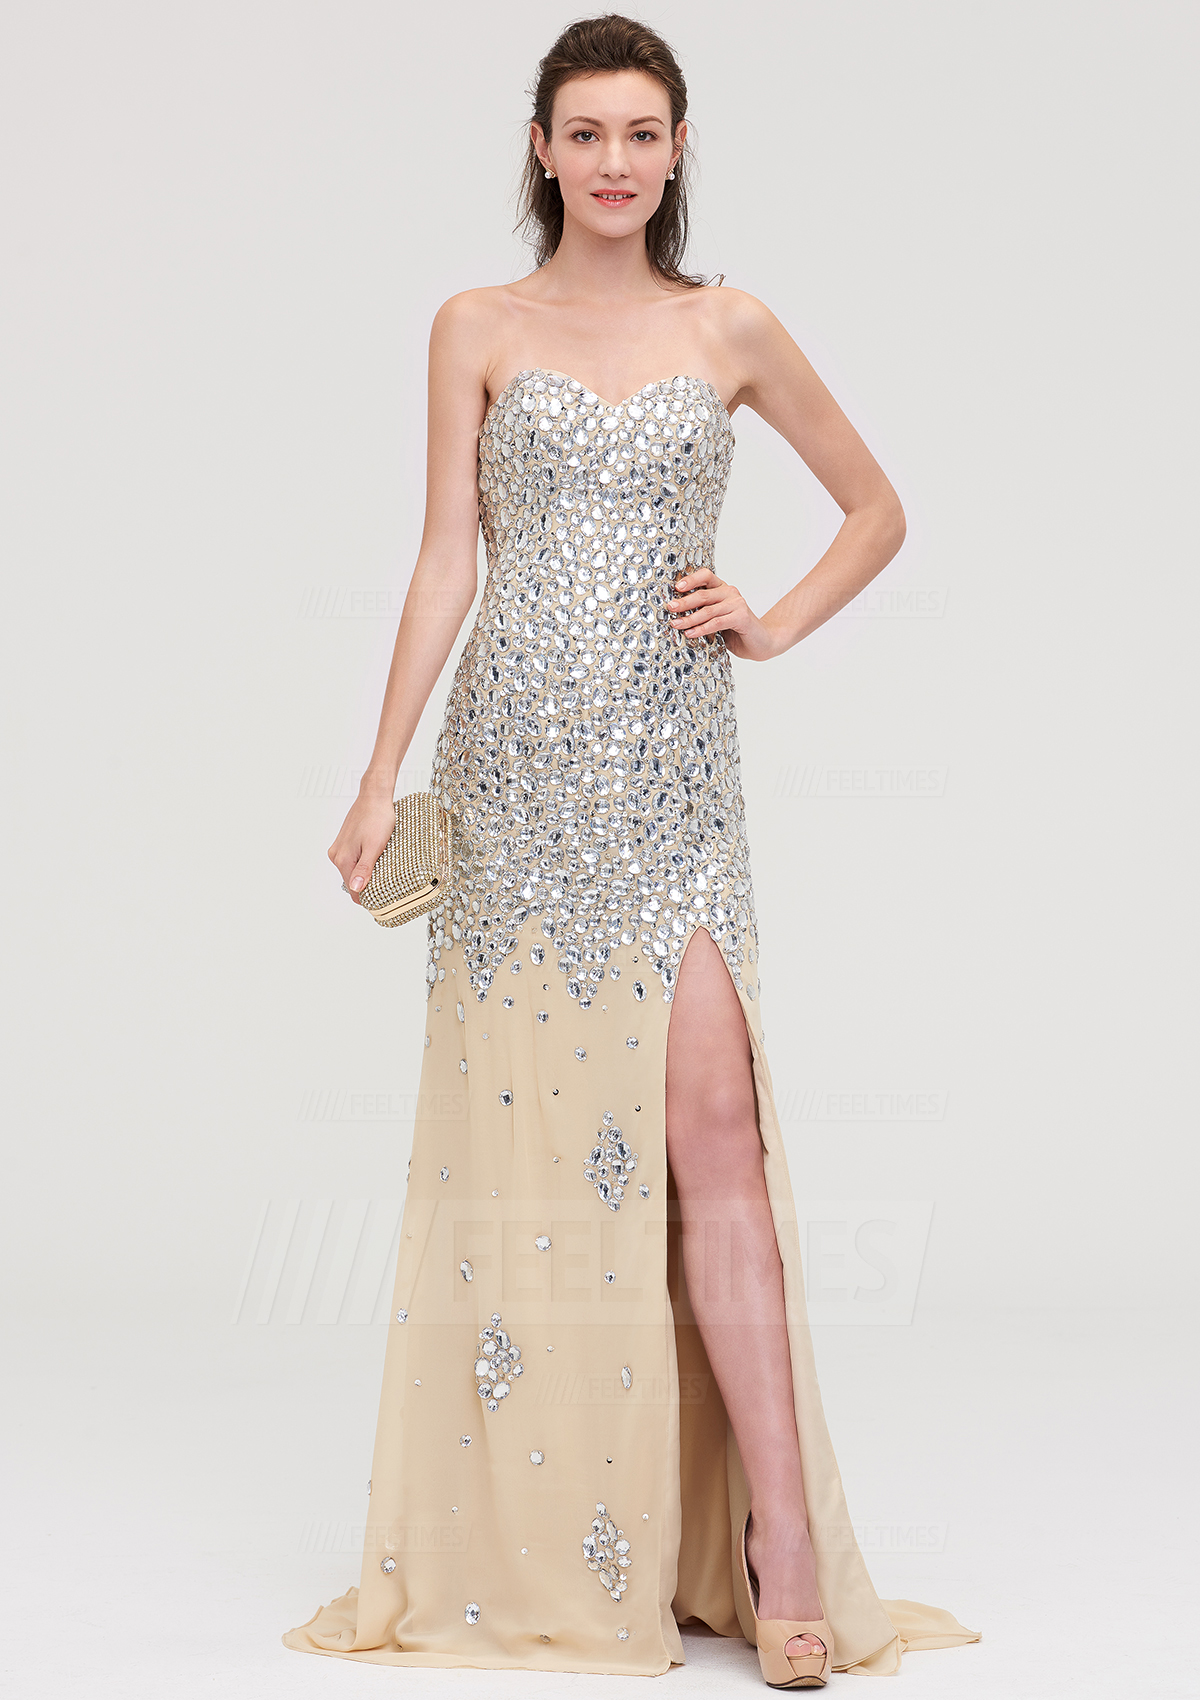 22f85b11a11 Sheath/Column Sweetheart Sleeveless Court Train Chiffon Evening Dress With  Beading